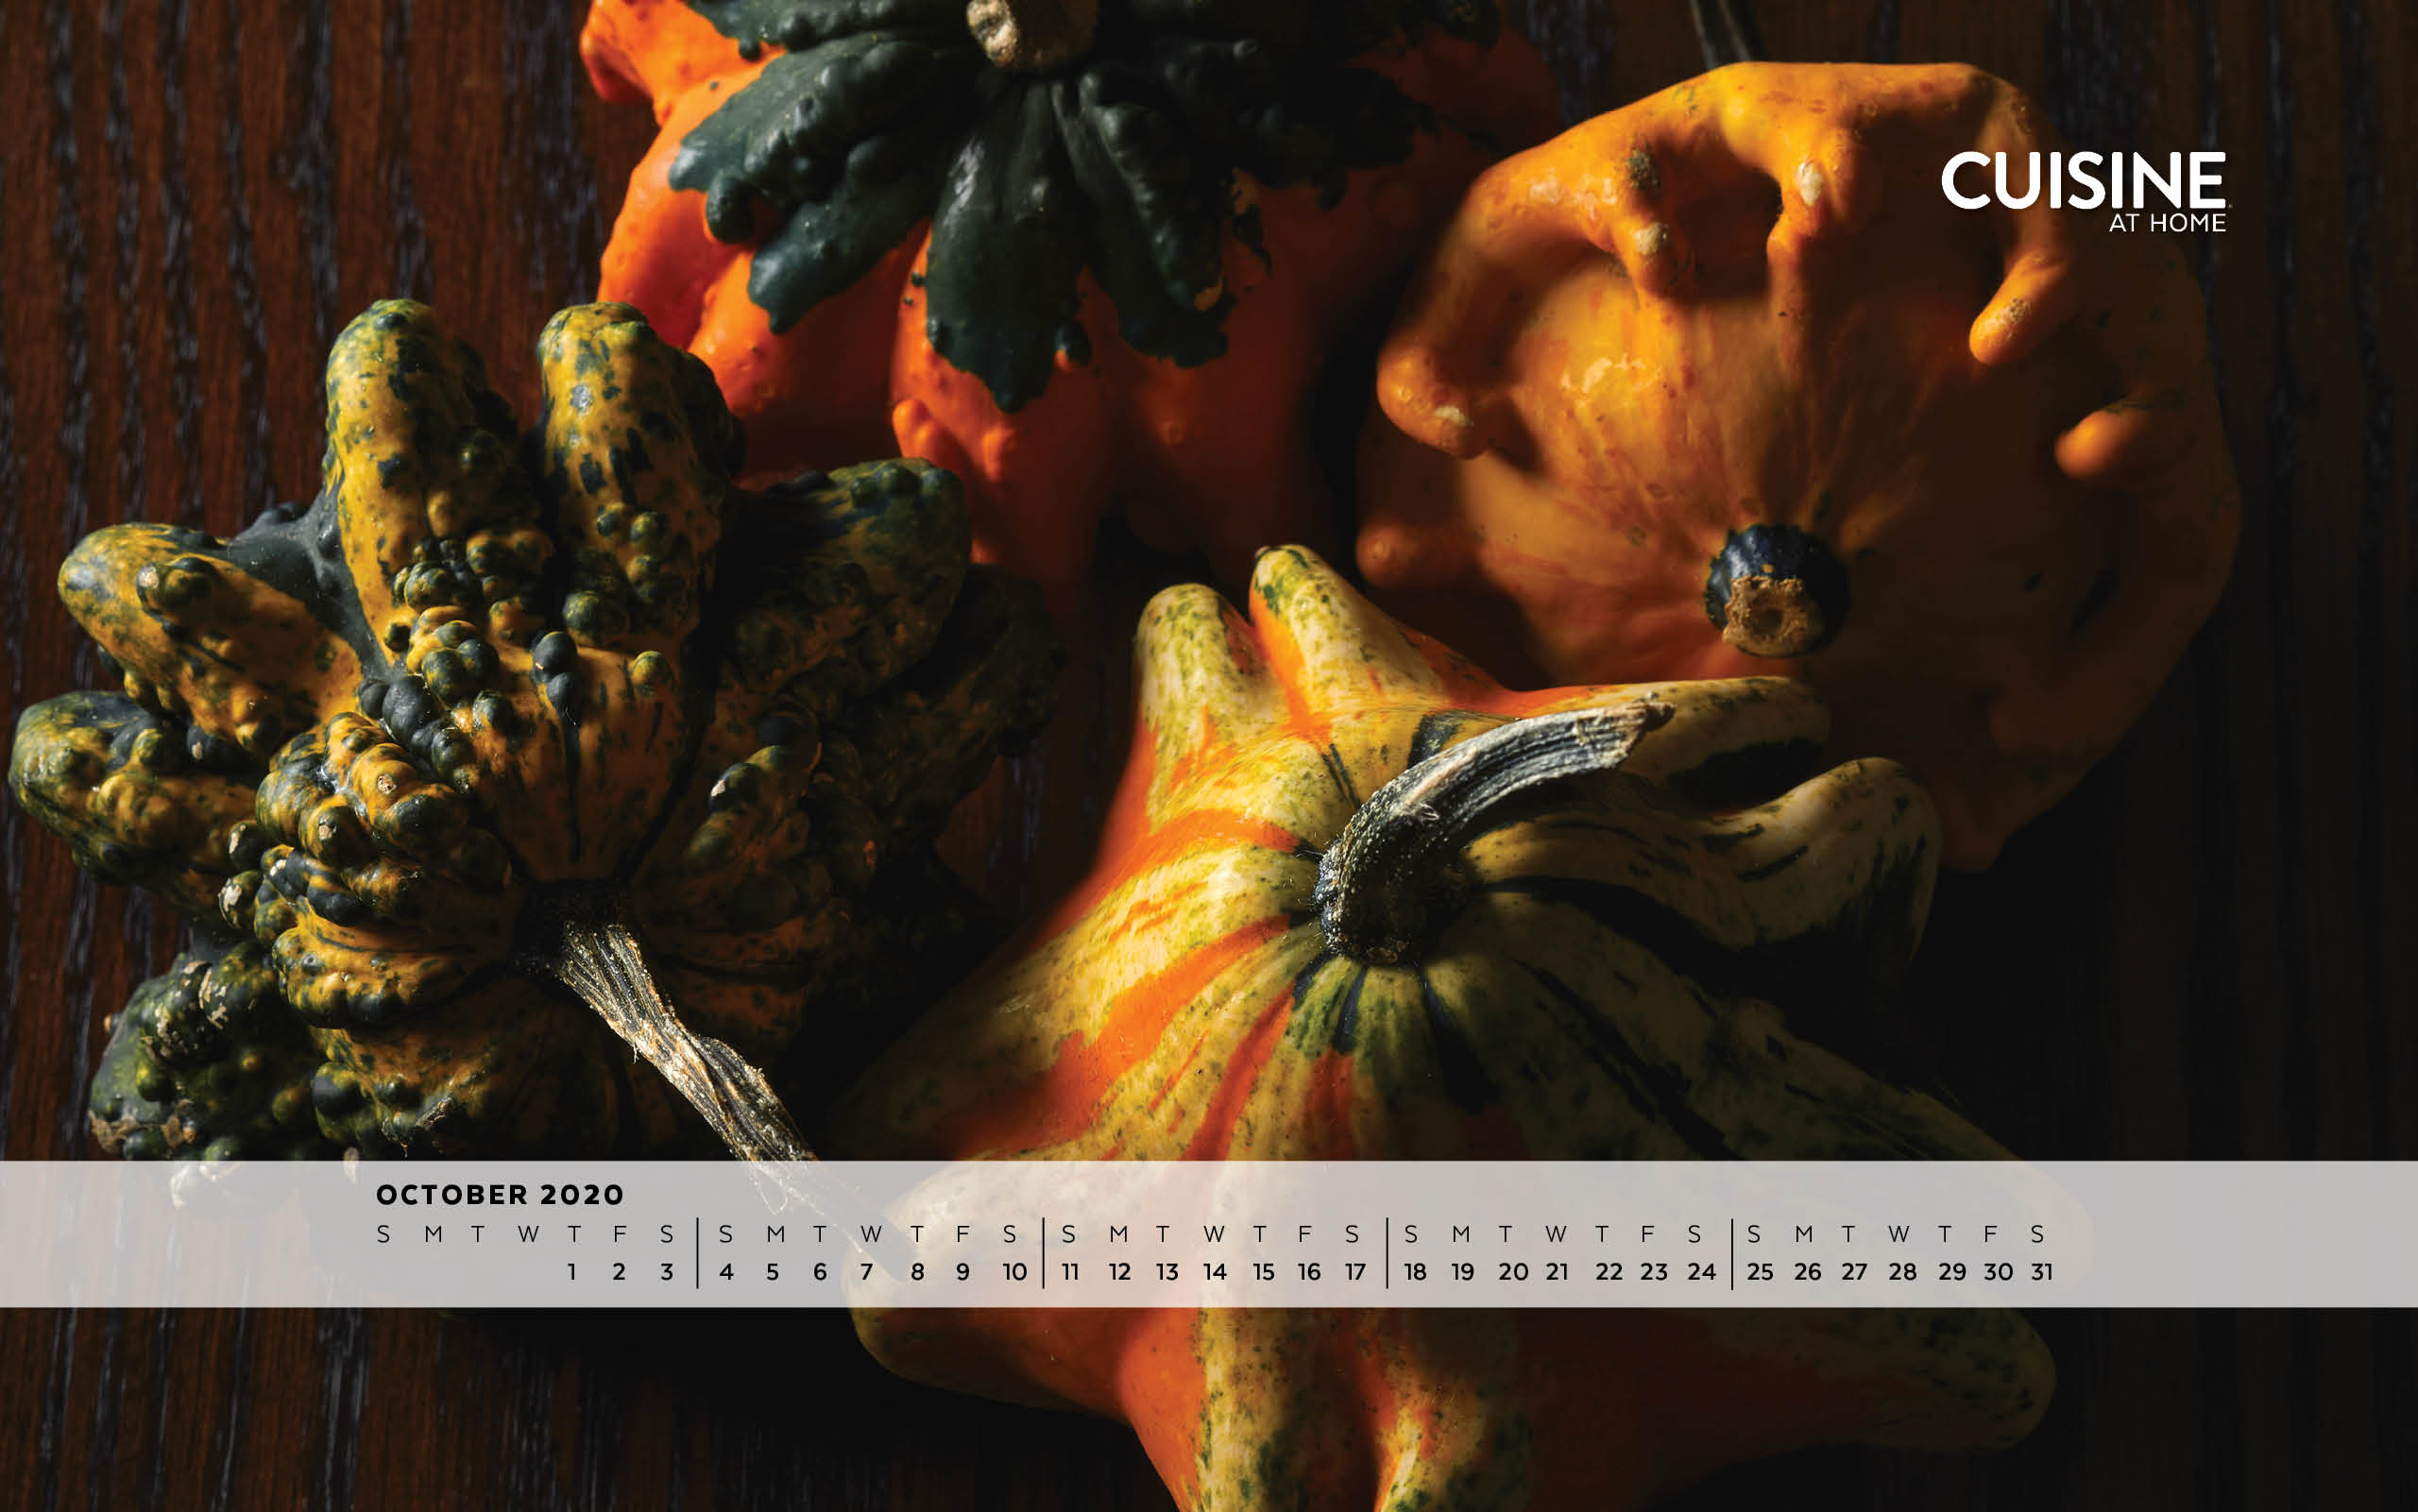 Free Desktop Wallpaper image for October 2020 from Cuisine at Home